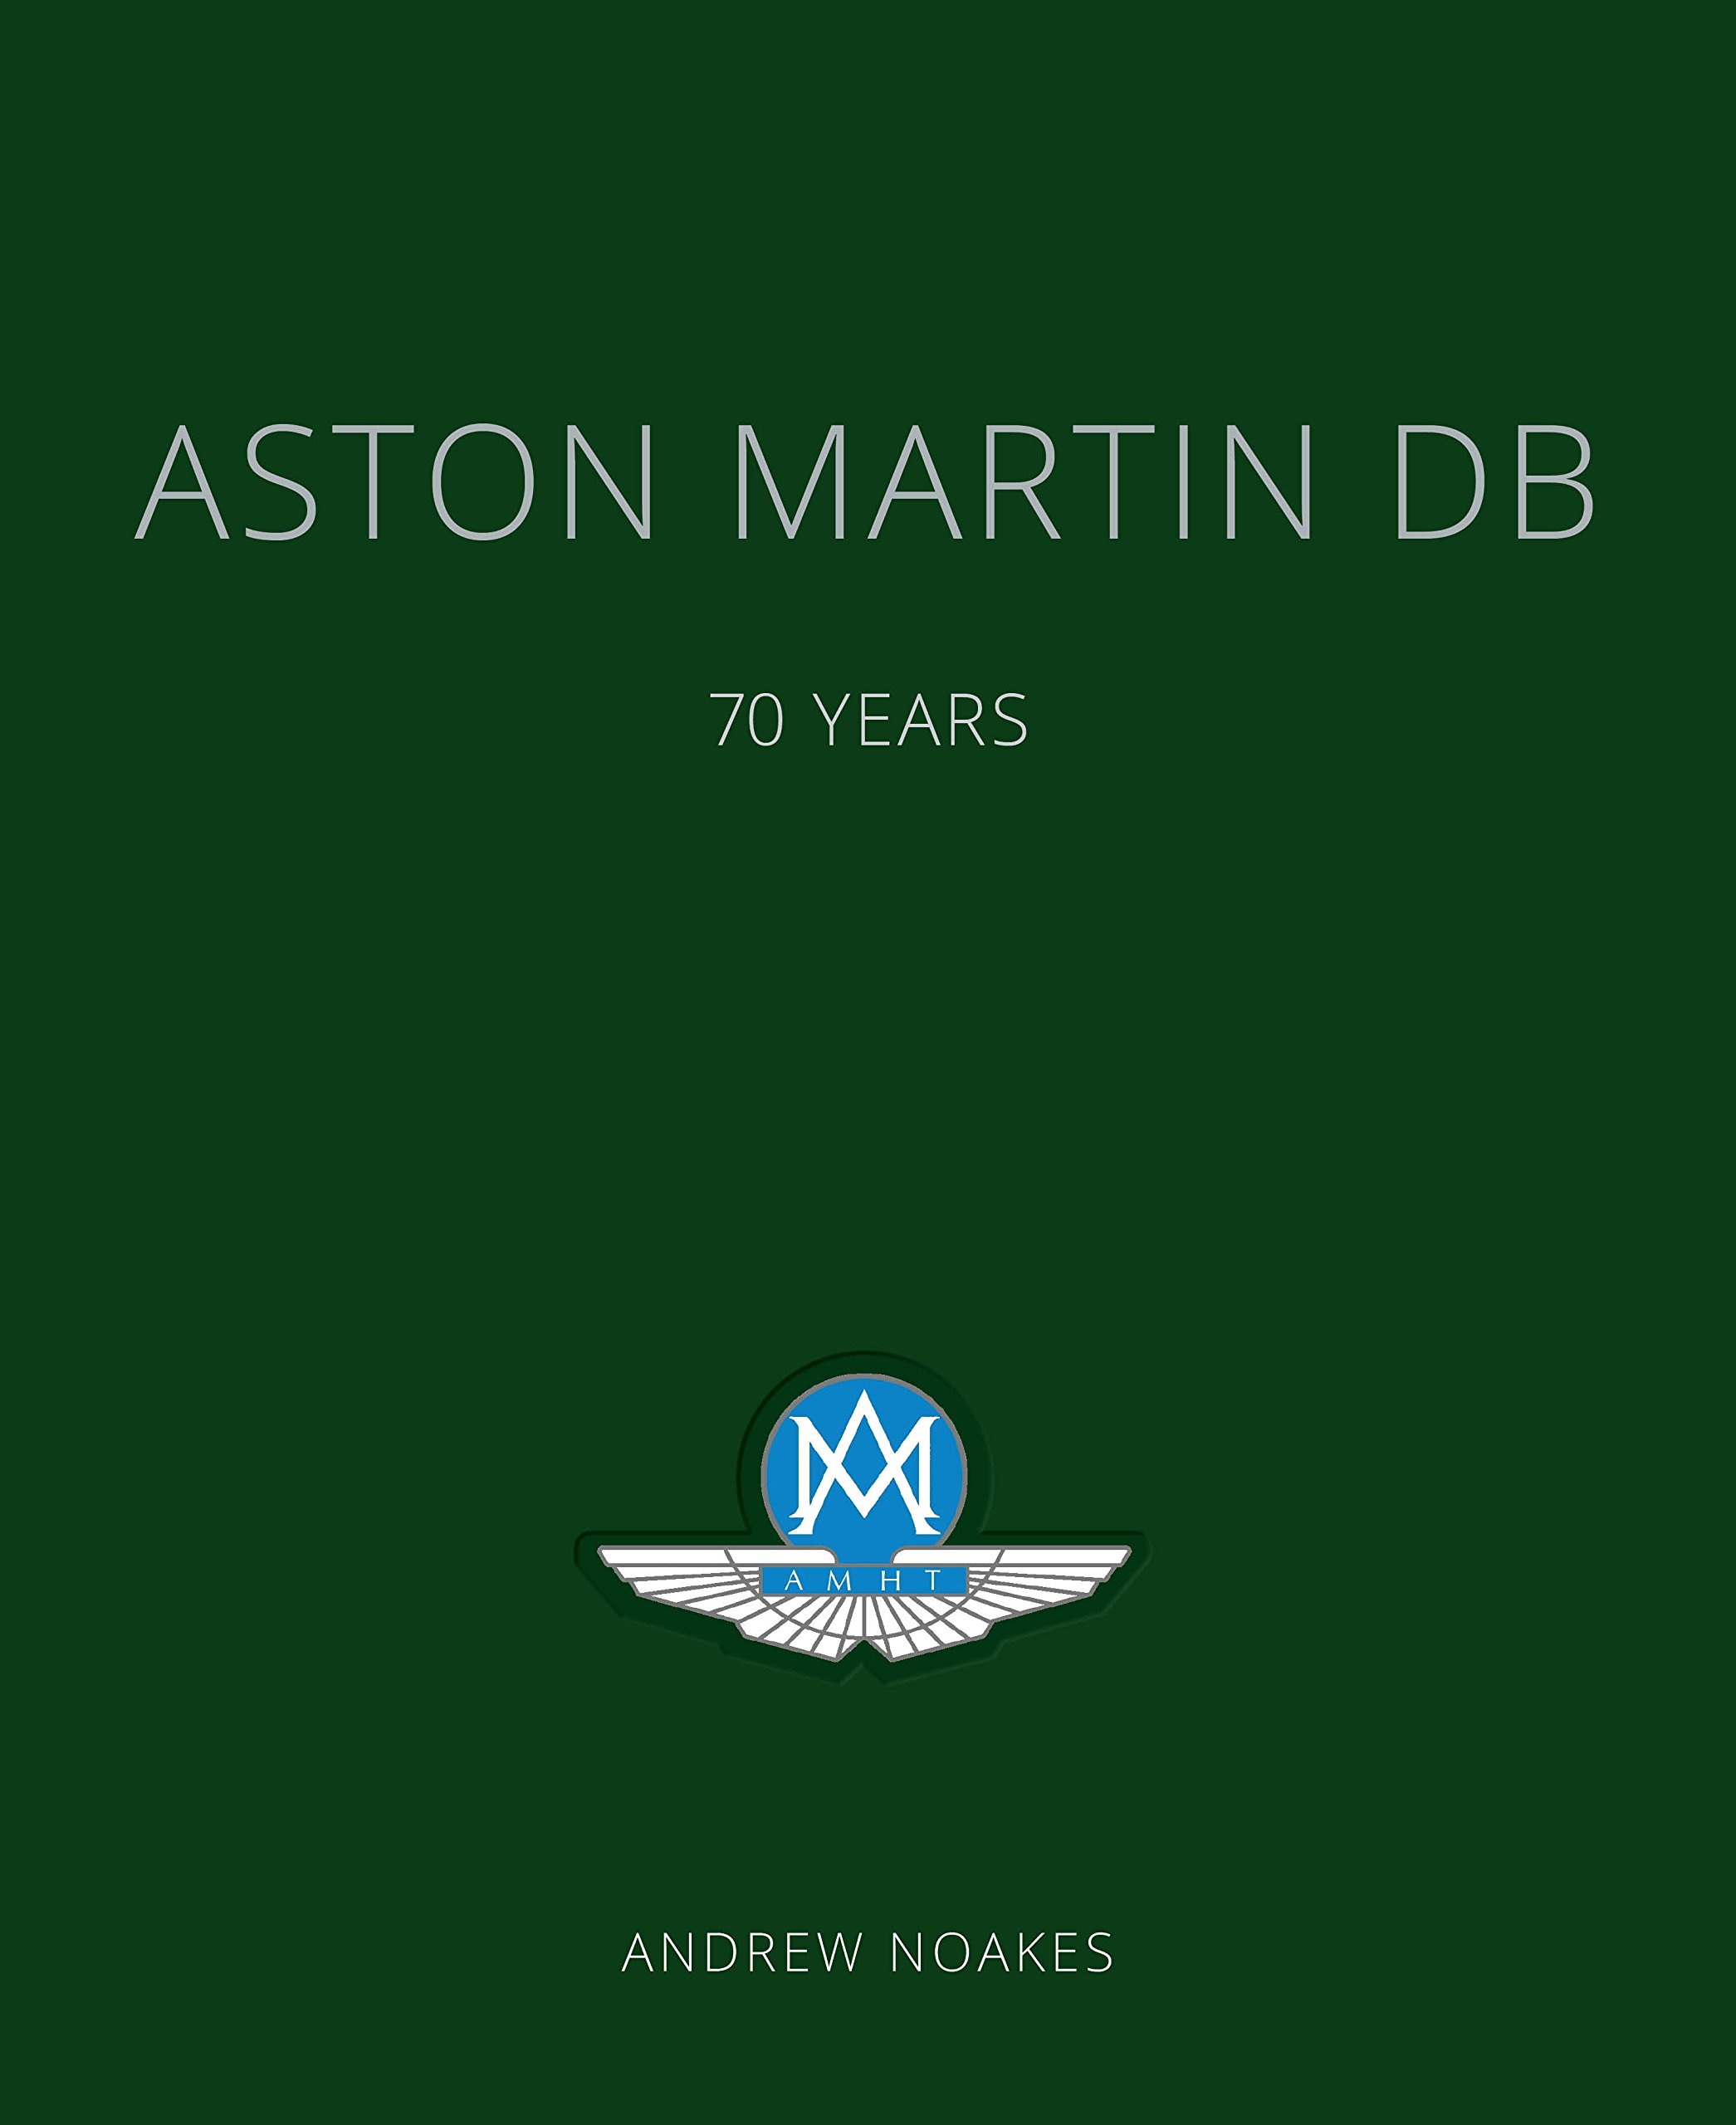 Aston Martin Db 70 Years Amazon Andrew Noakes Roger Carey